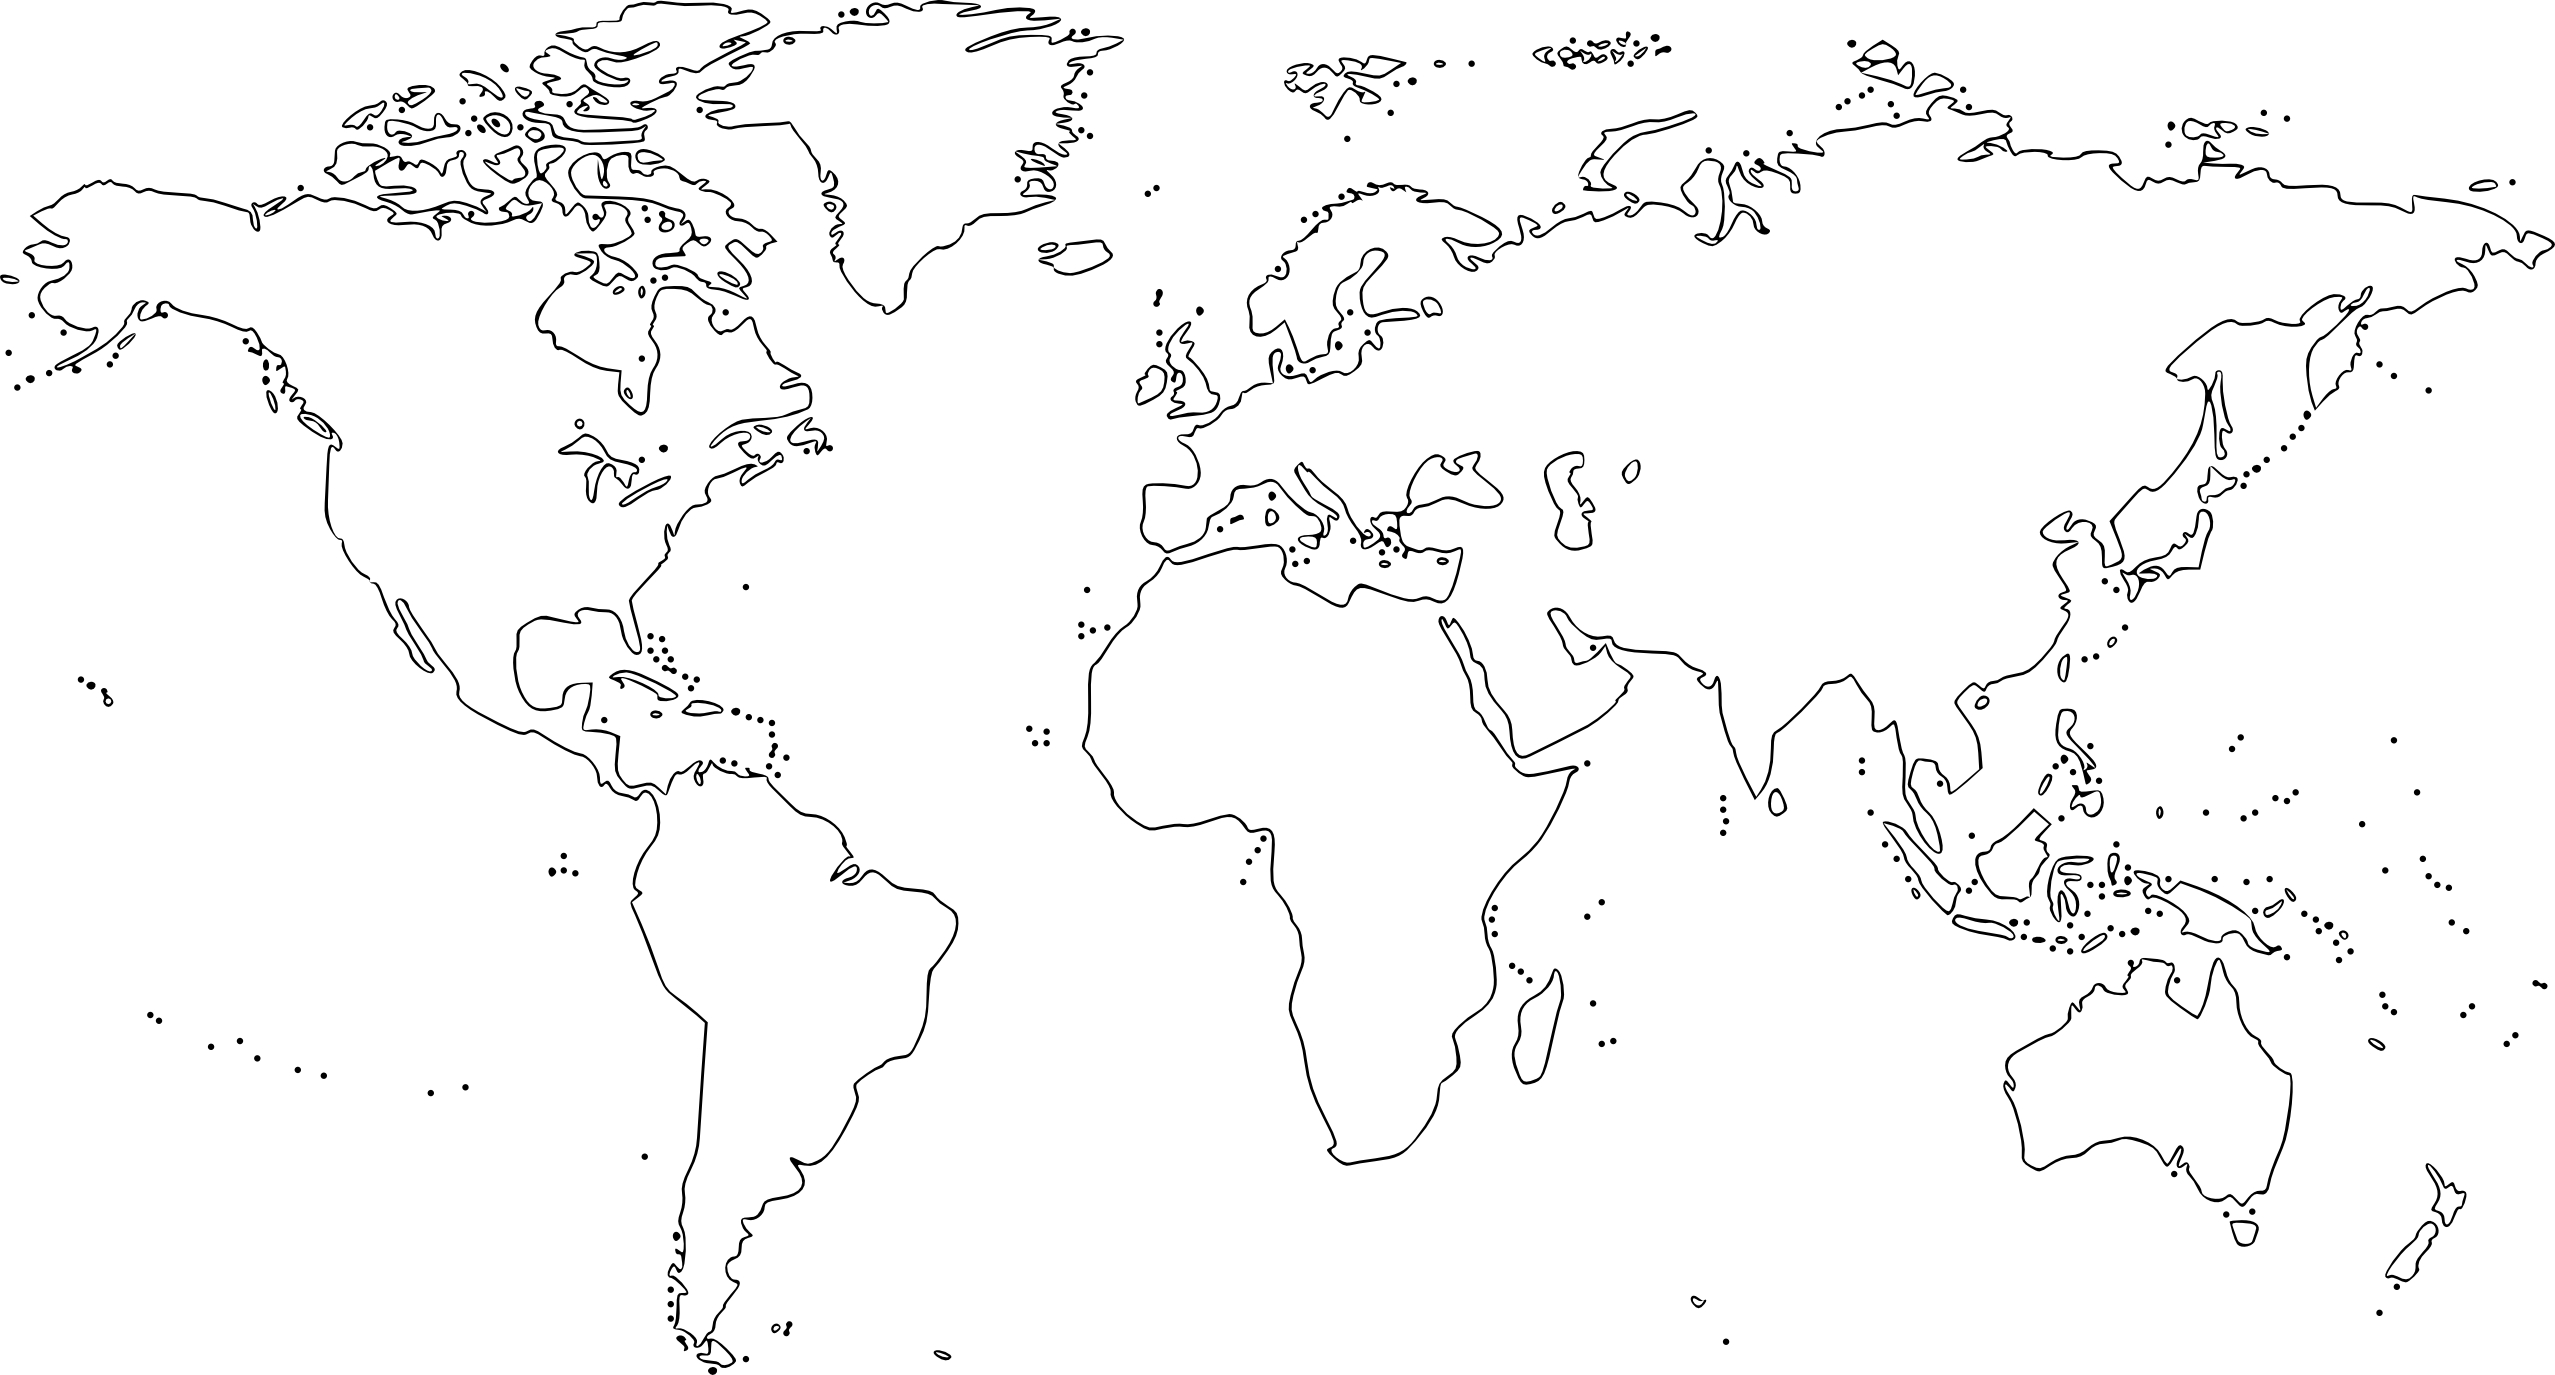 World map drawing tumblr at getdrawings free for personal use 2555x1375 best photos of black world map traceables gumiabroncs Image collections